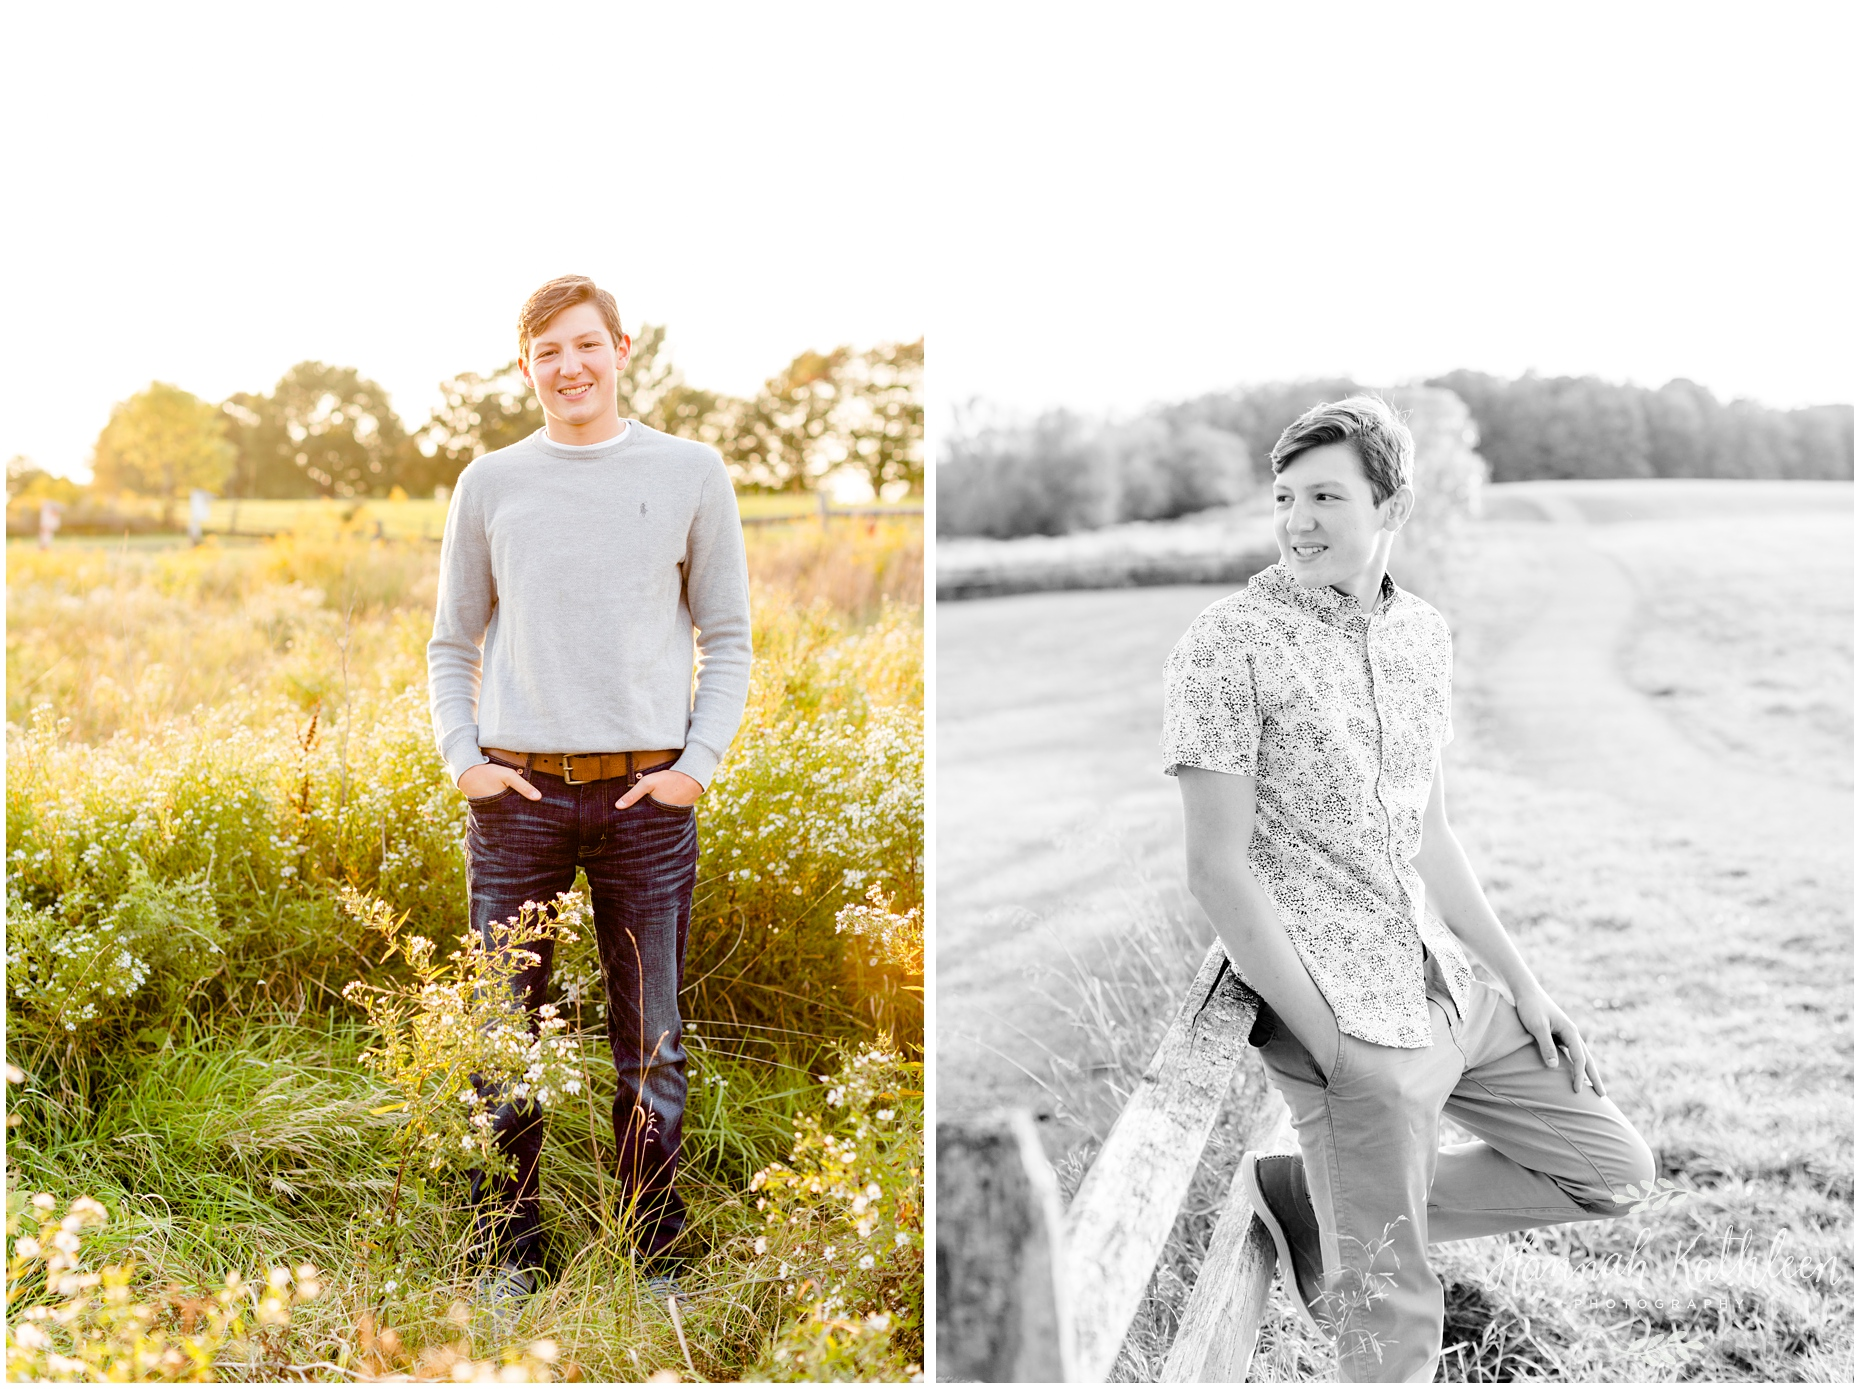 Zach_Senior_Knox_Farm_East_Aurora_Photography_Buffalo_New_York